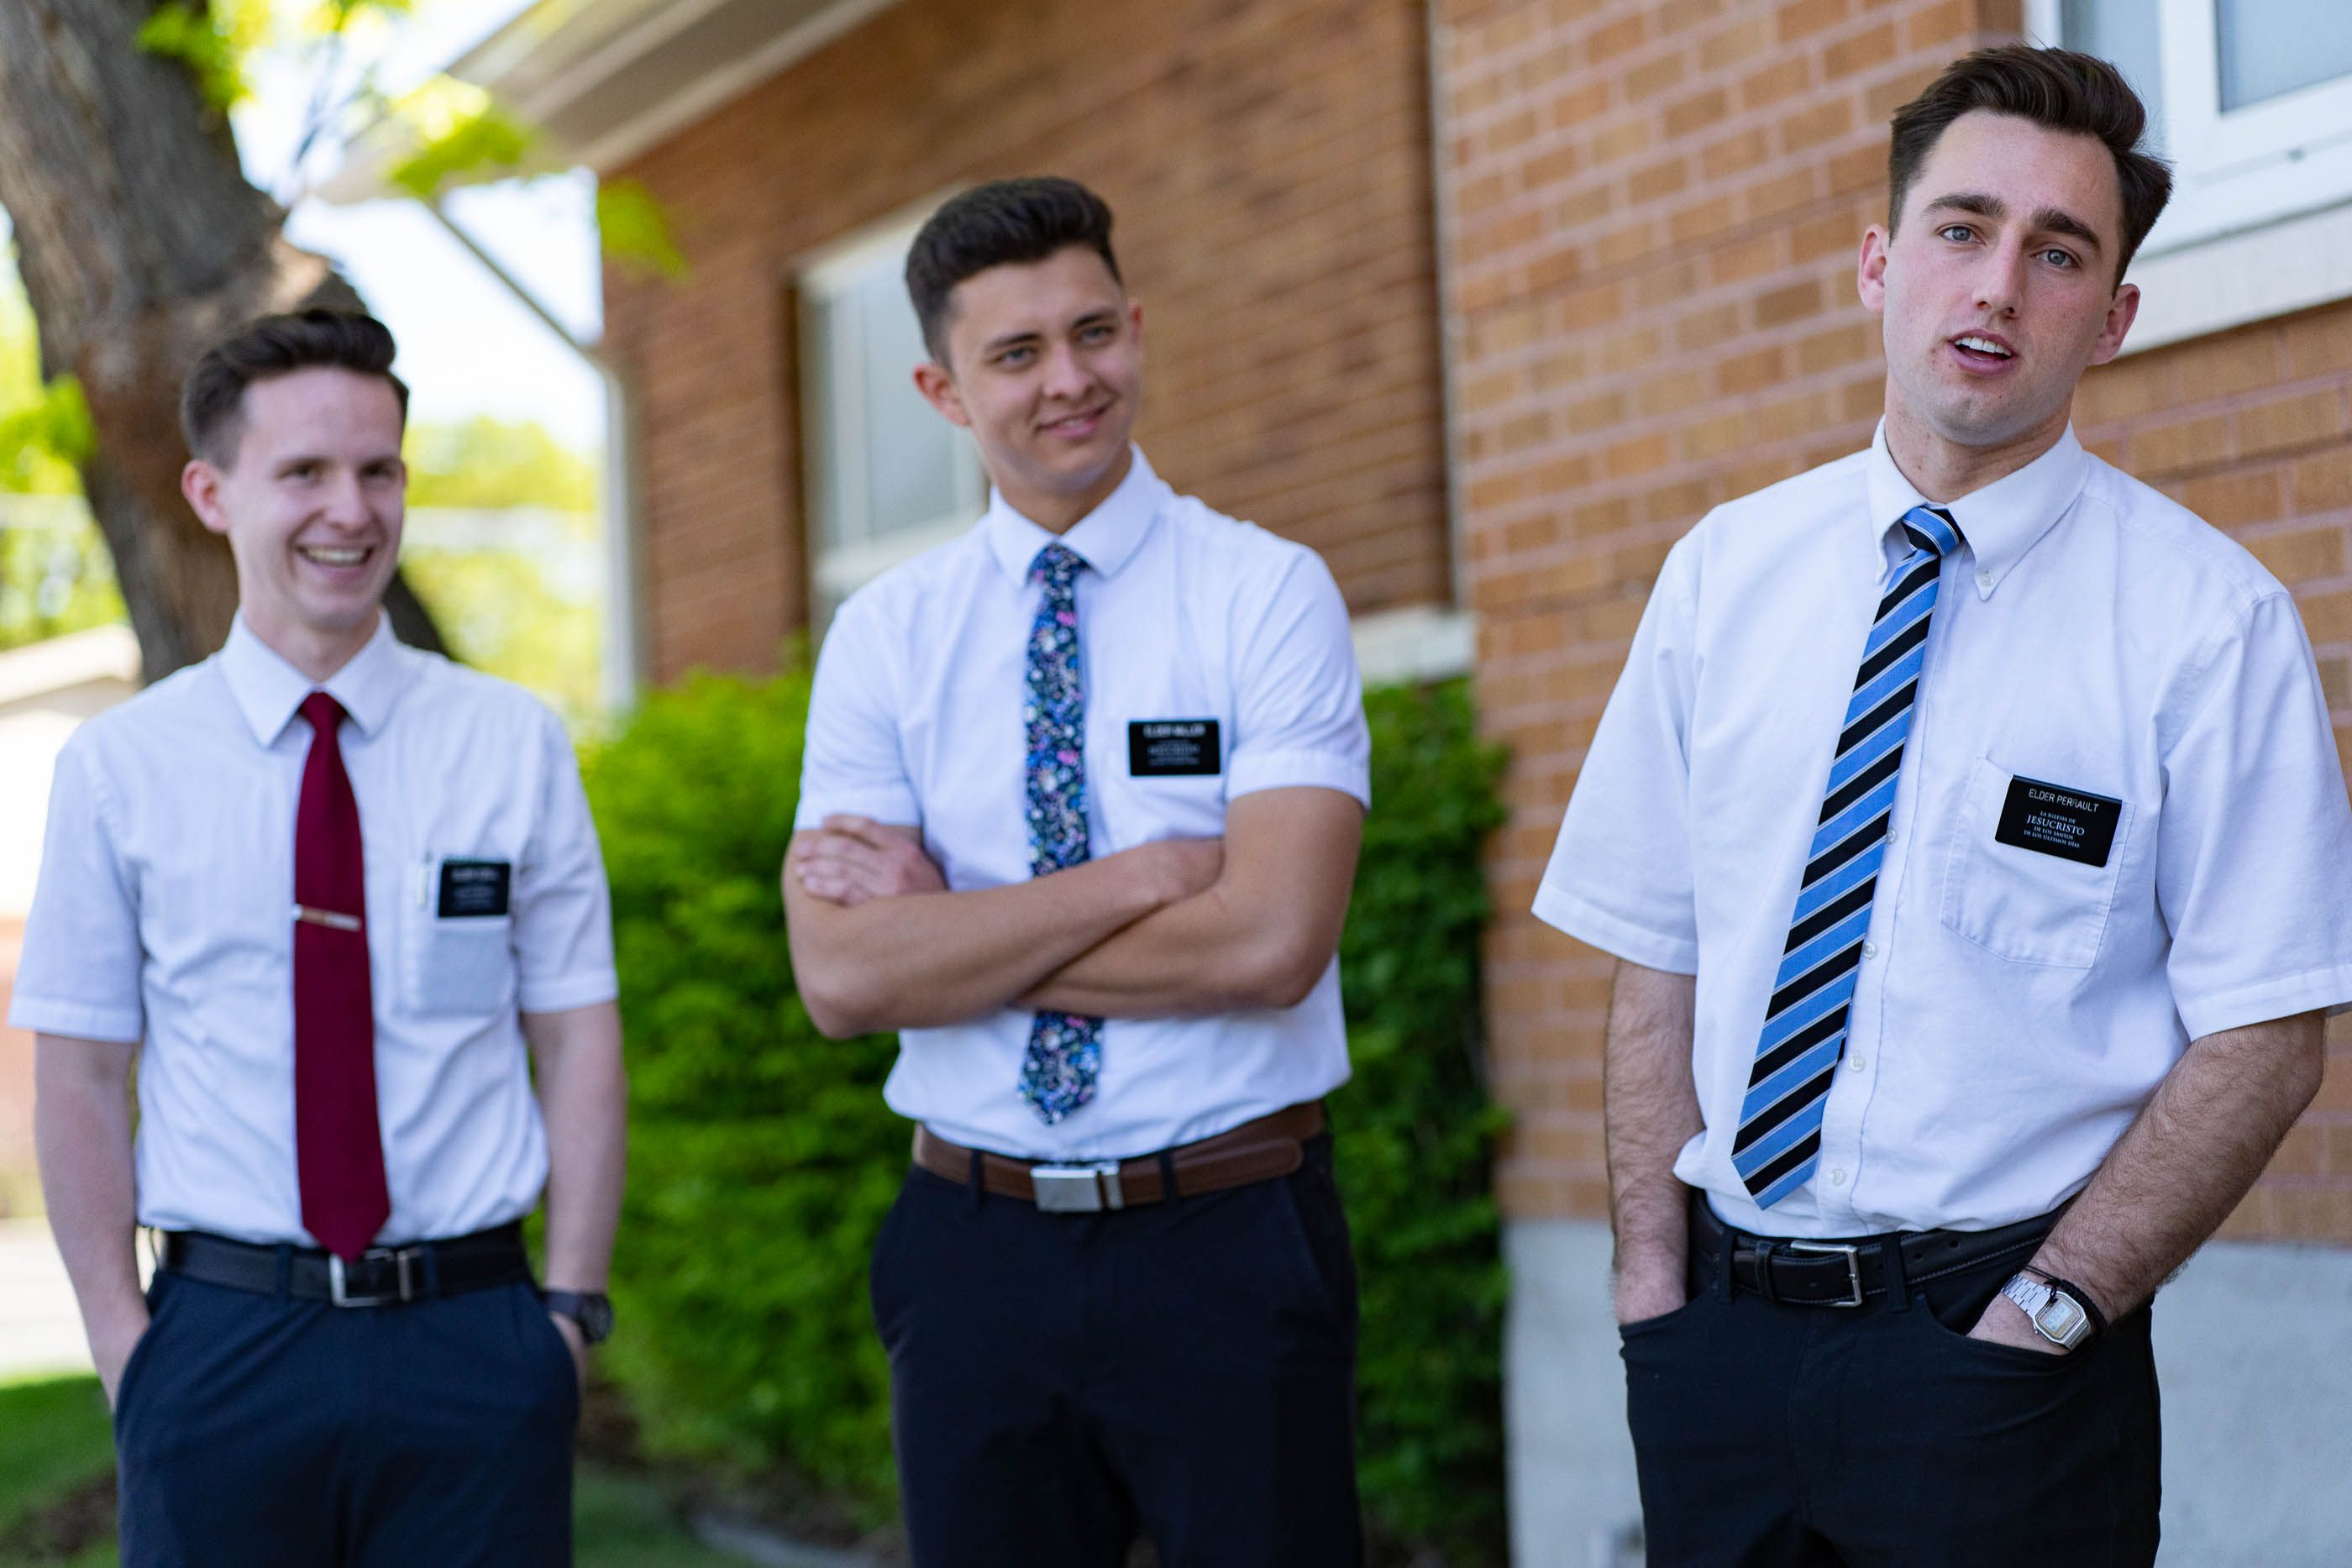 (Francisco Kjolseth | The Salt Lake Tribune) Full-time missionaries with The Church of Jesus Christ of Latter-day Saints — Jakob Ezell, left, of Seattle; James Miller of Laie, Hawaii; and Seth Perrault of Fresno, Calif., talk about finding potential converts through social media, rather than door-to-door contacting, on Tuesday, May 18, 2021.